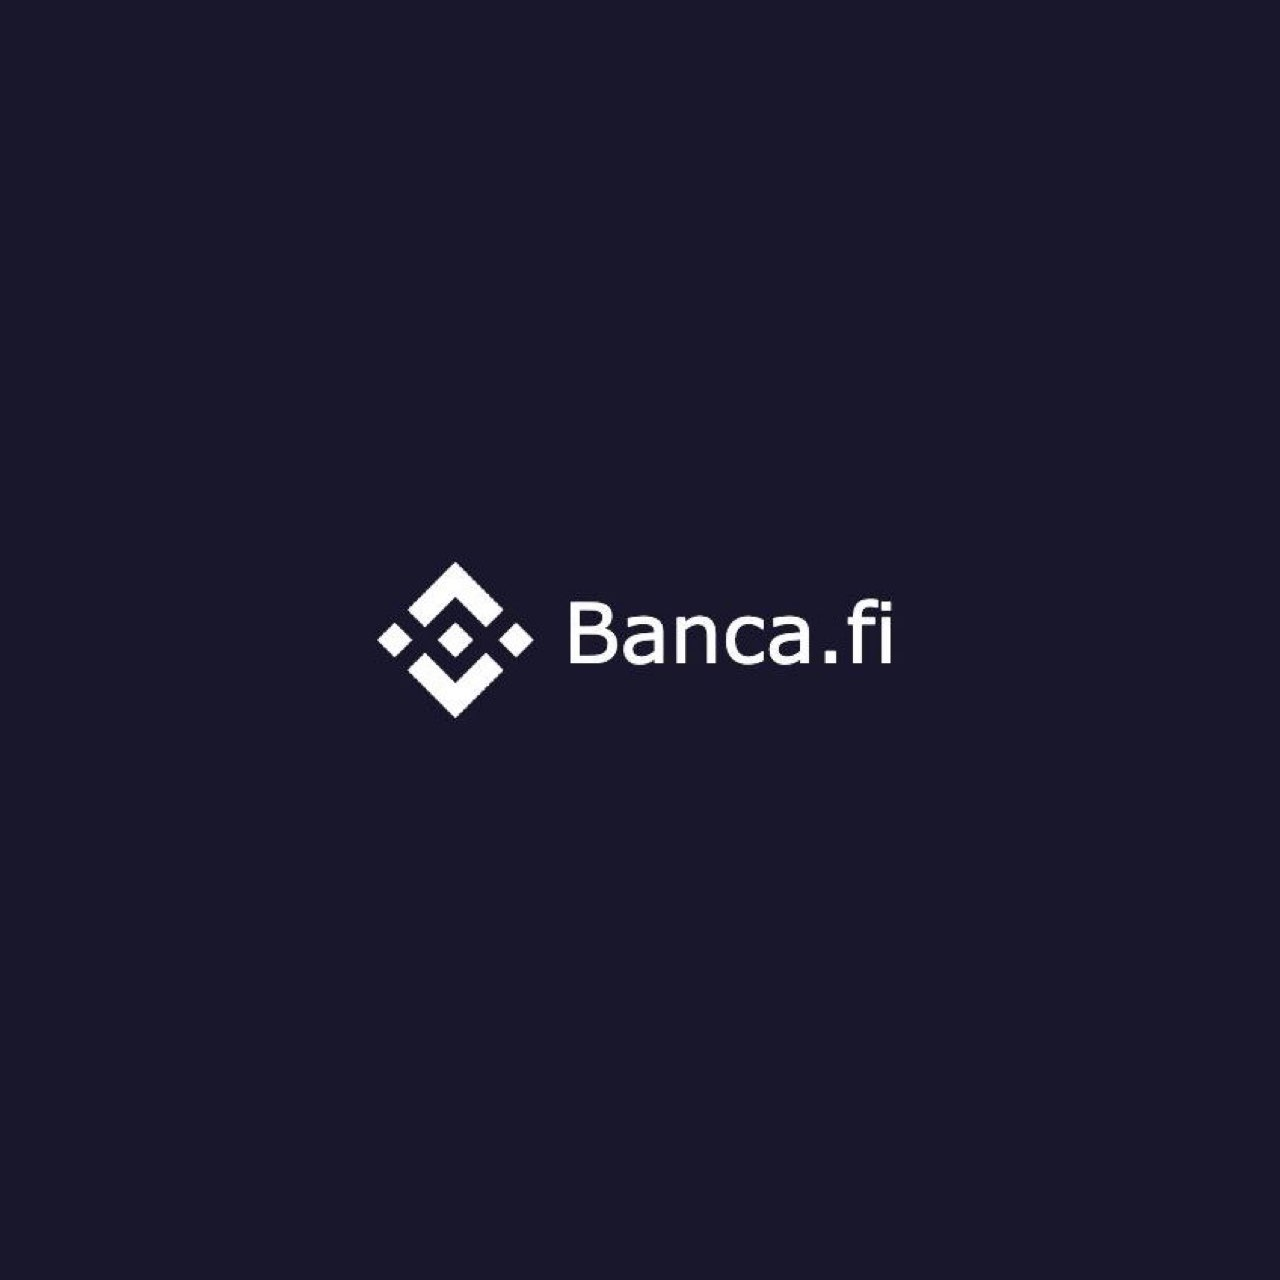 Bank Your BNB & Earn up to 20% Daily — Banca.fi logo